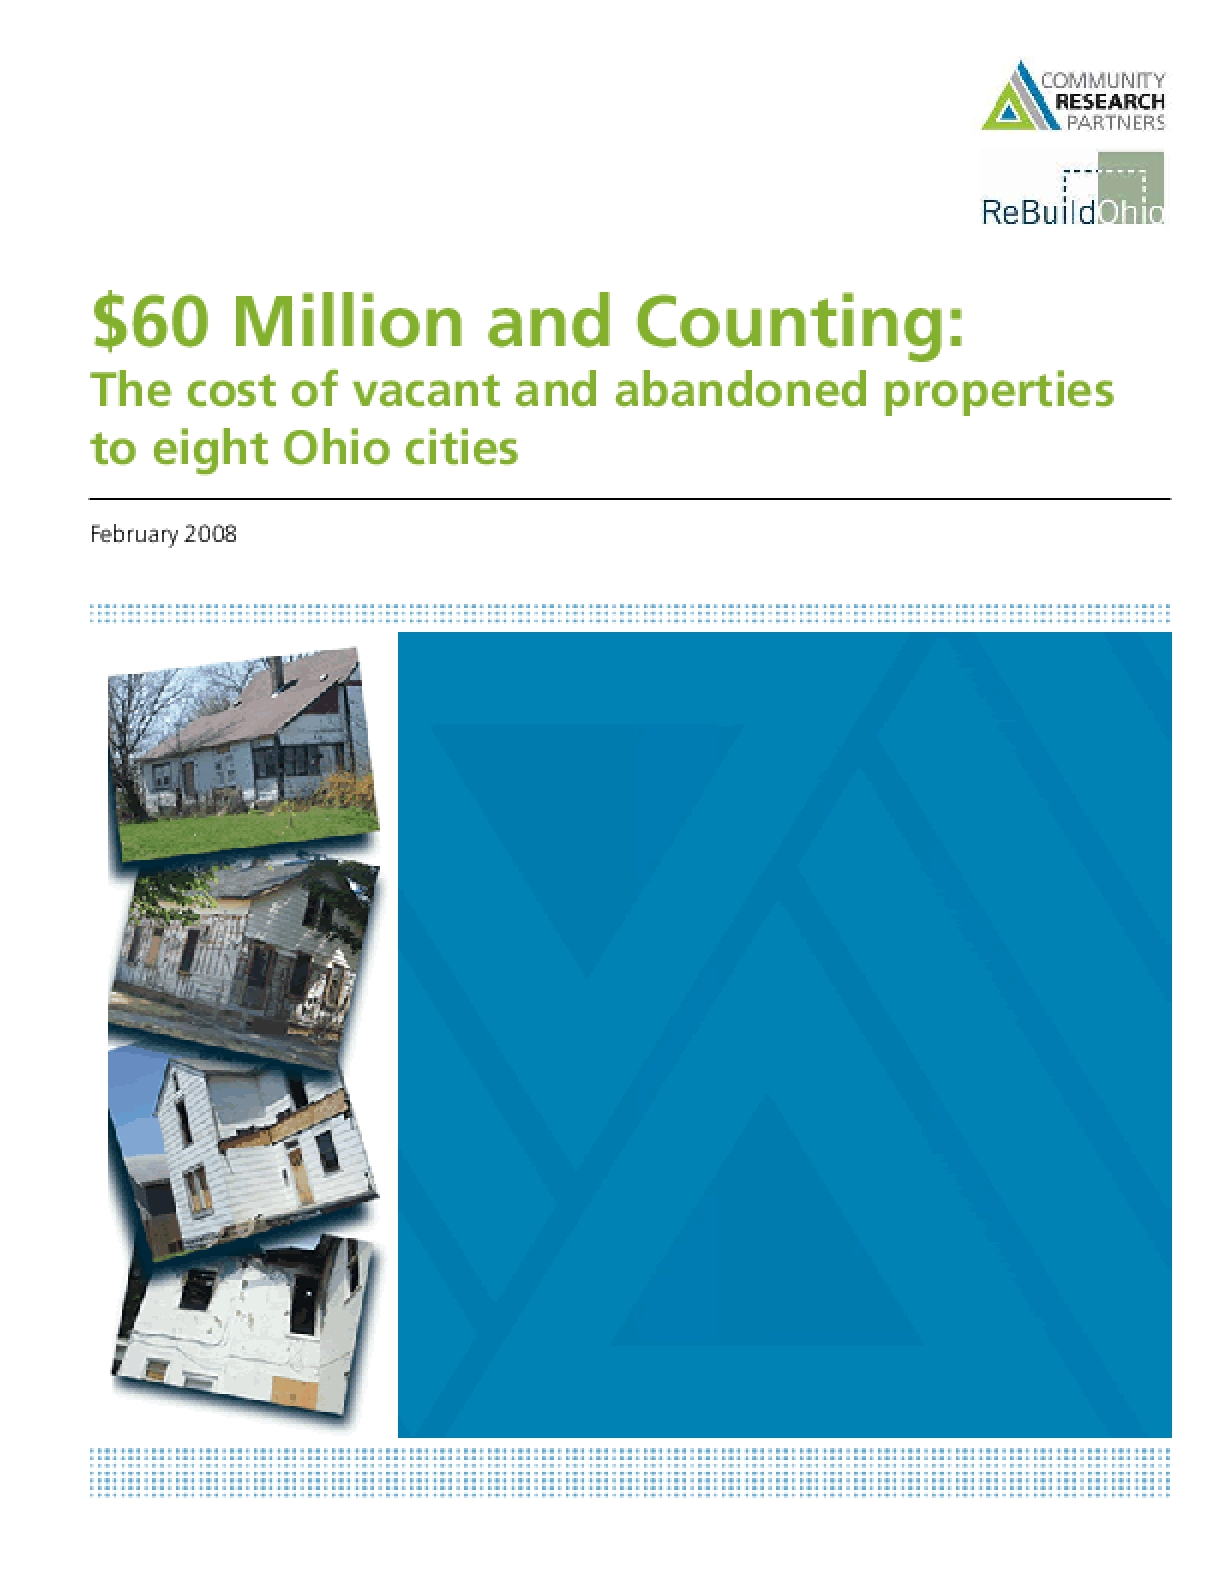 $60 Million and Counting: The cost of vacant and abandoned properties to eight Ohio cities